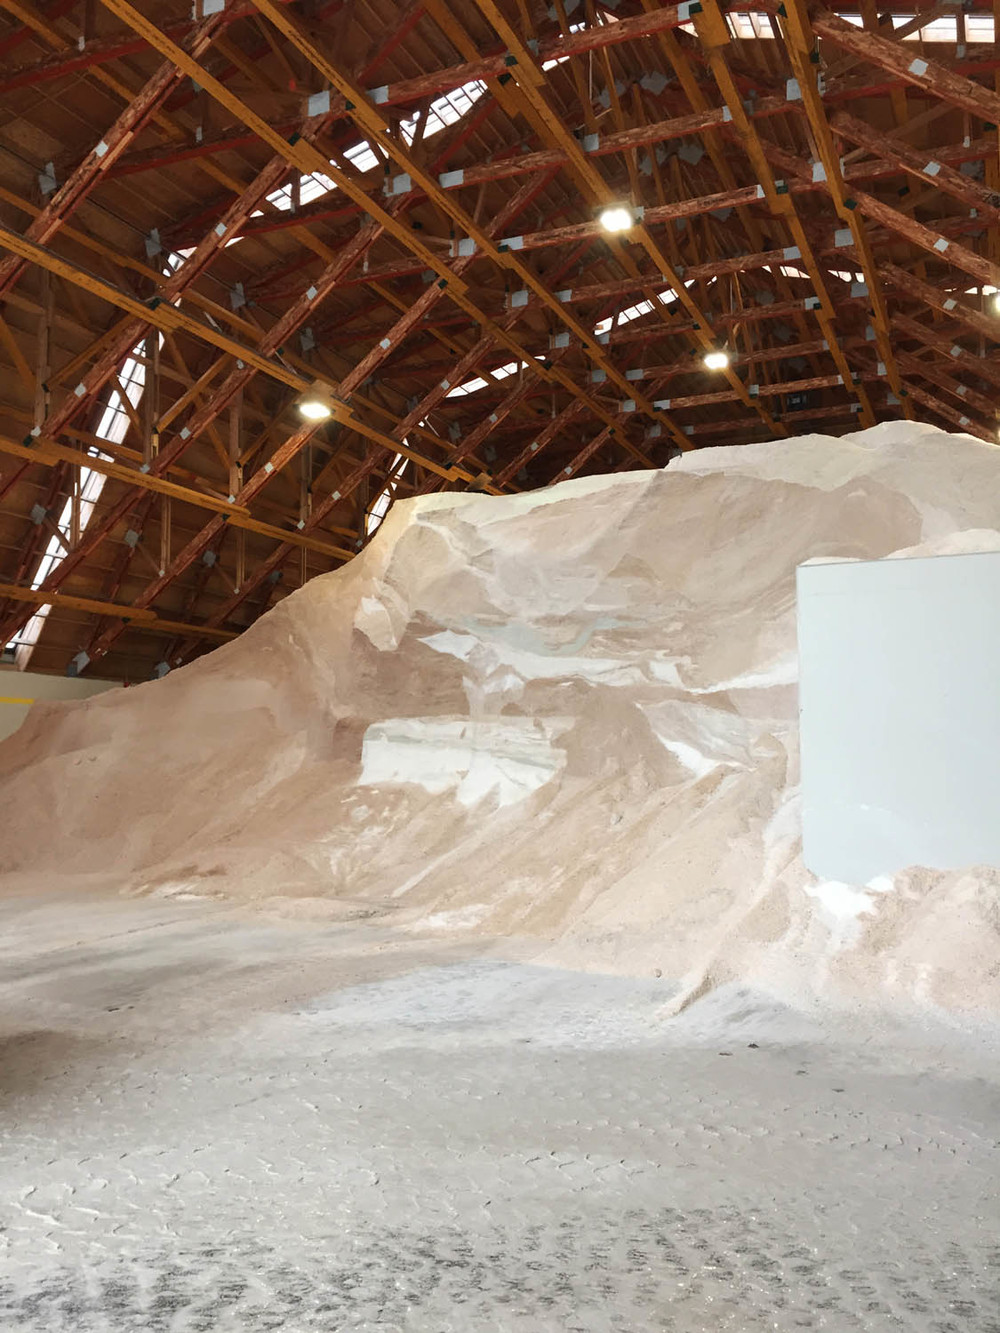 Braintree Depot Salt Barn Full